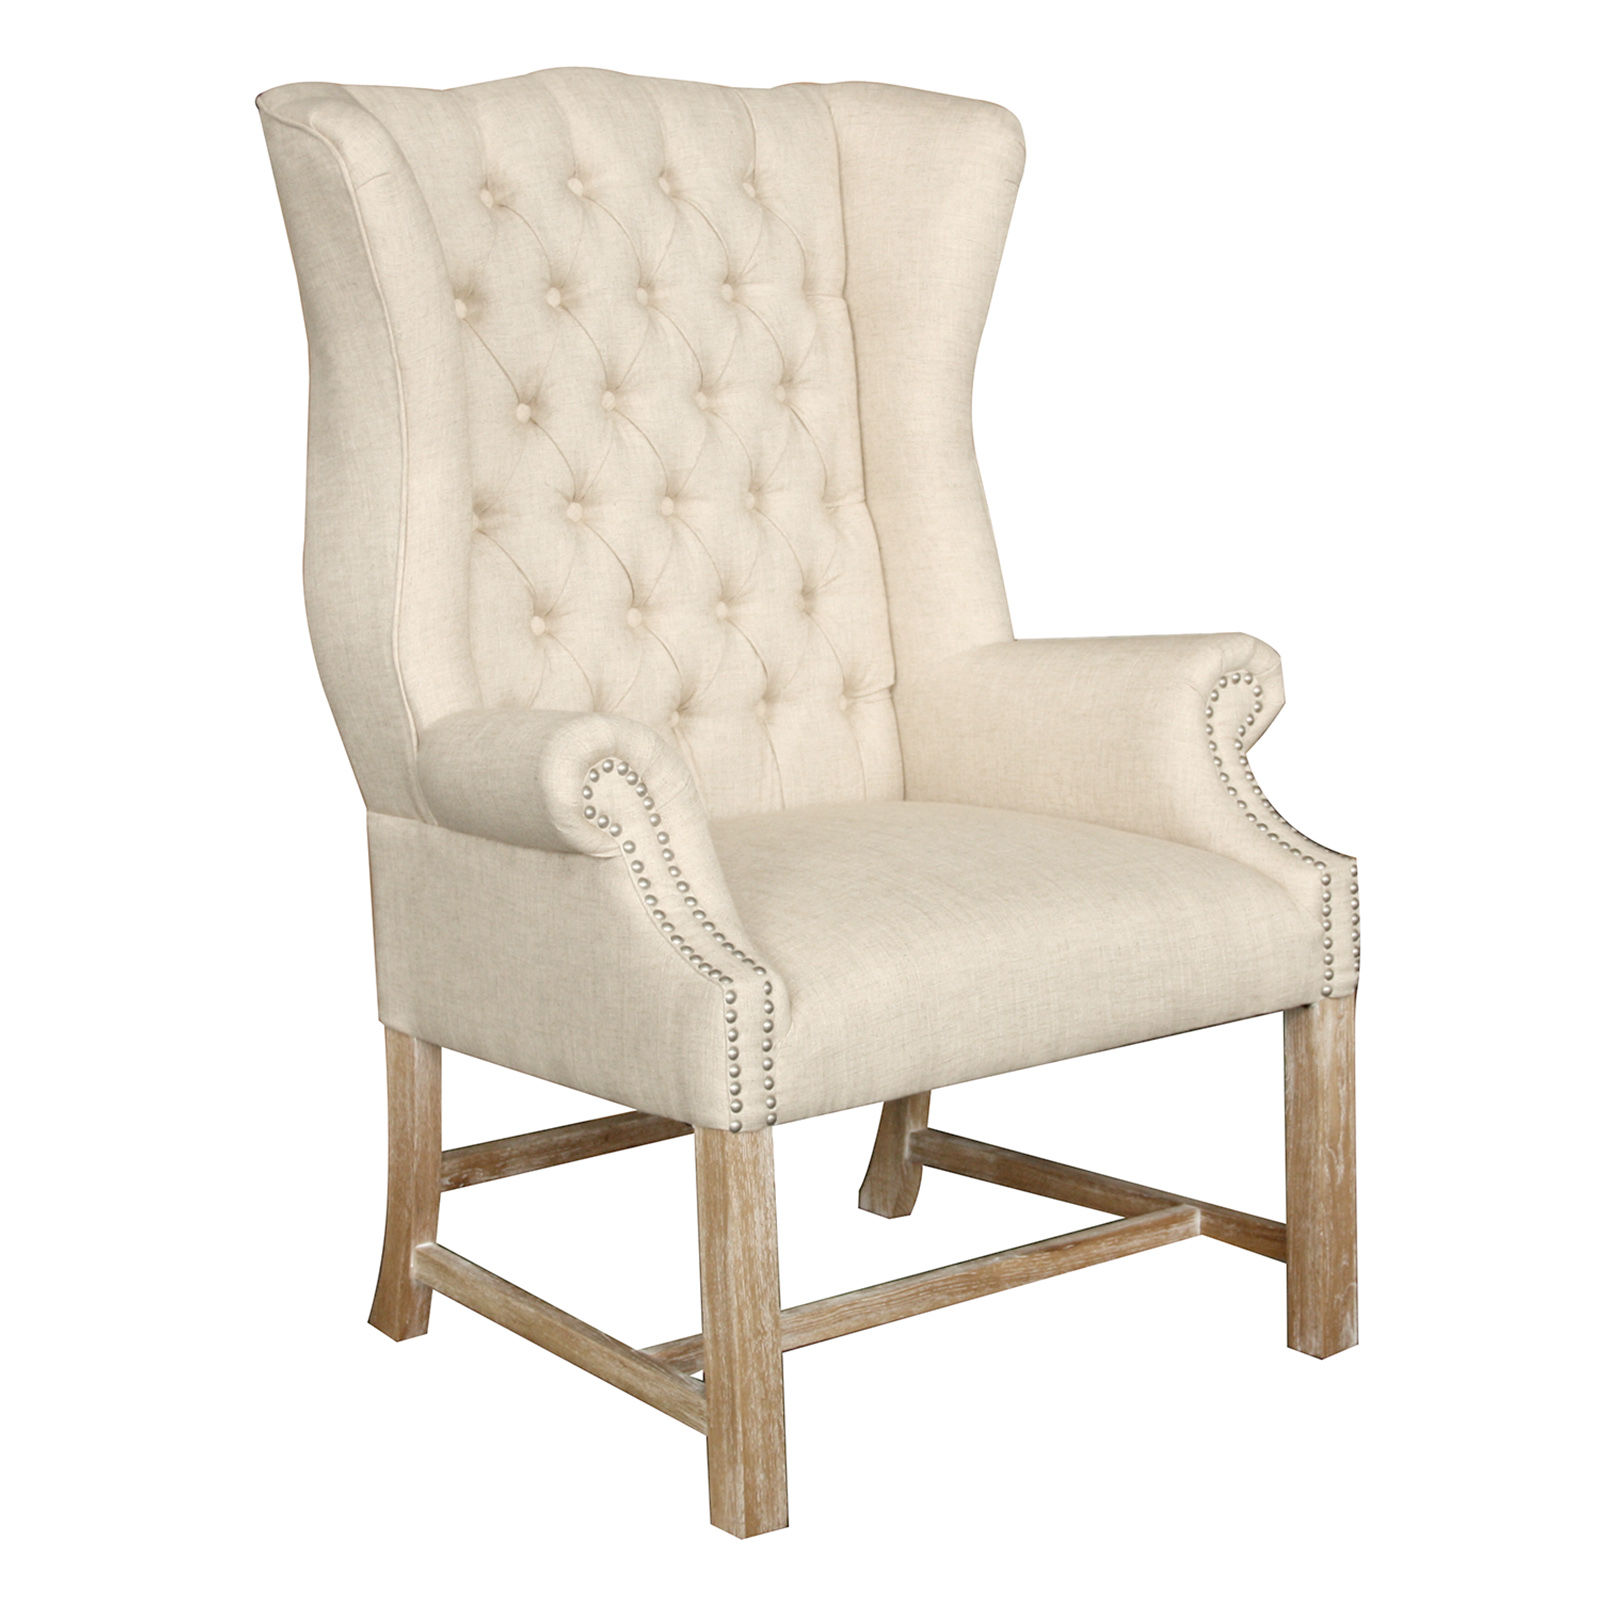 Dining room grey wingback chair patterned living room Tufted accent chair